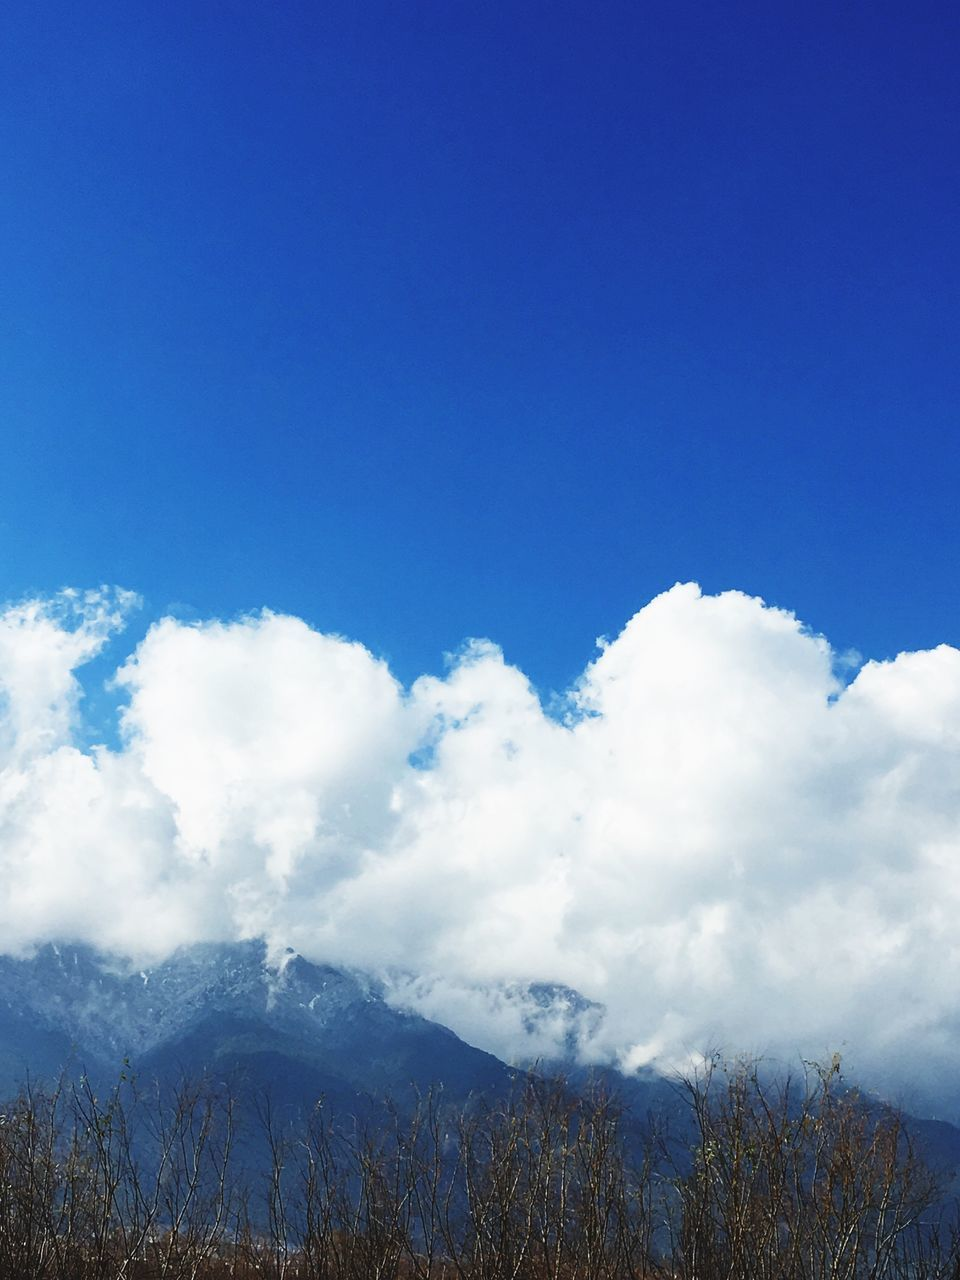 nature, blue, scenics, beauty in nature, tranquility, tranquil scene, sky, day, outdoors, mountain, no people, cloud - sky, low angle view, tree, landscape